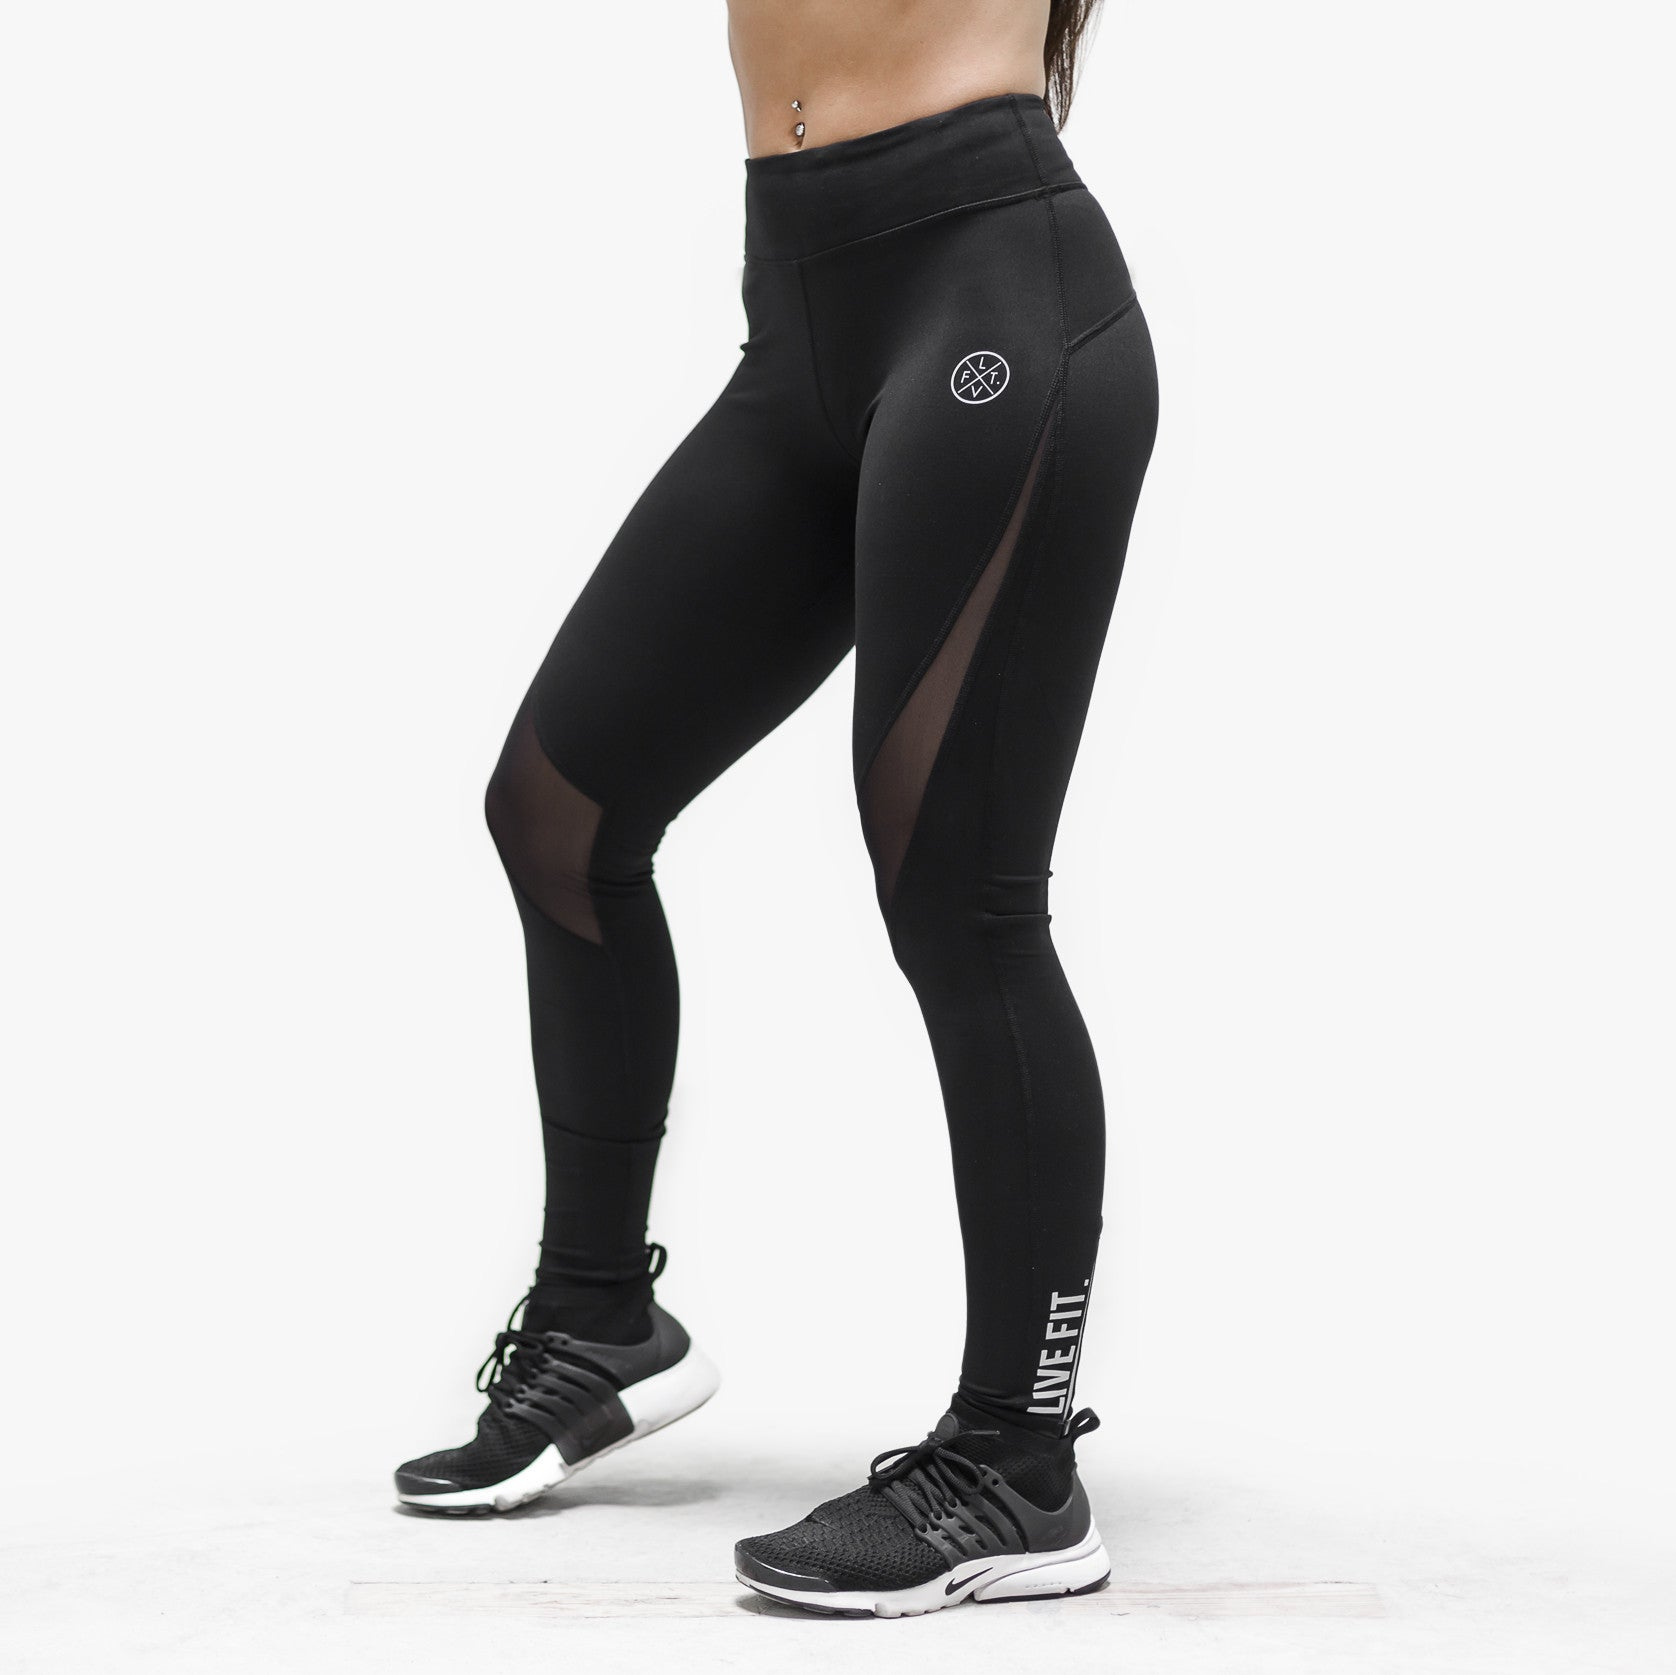 Elite Tech Leggings- Black/Silver